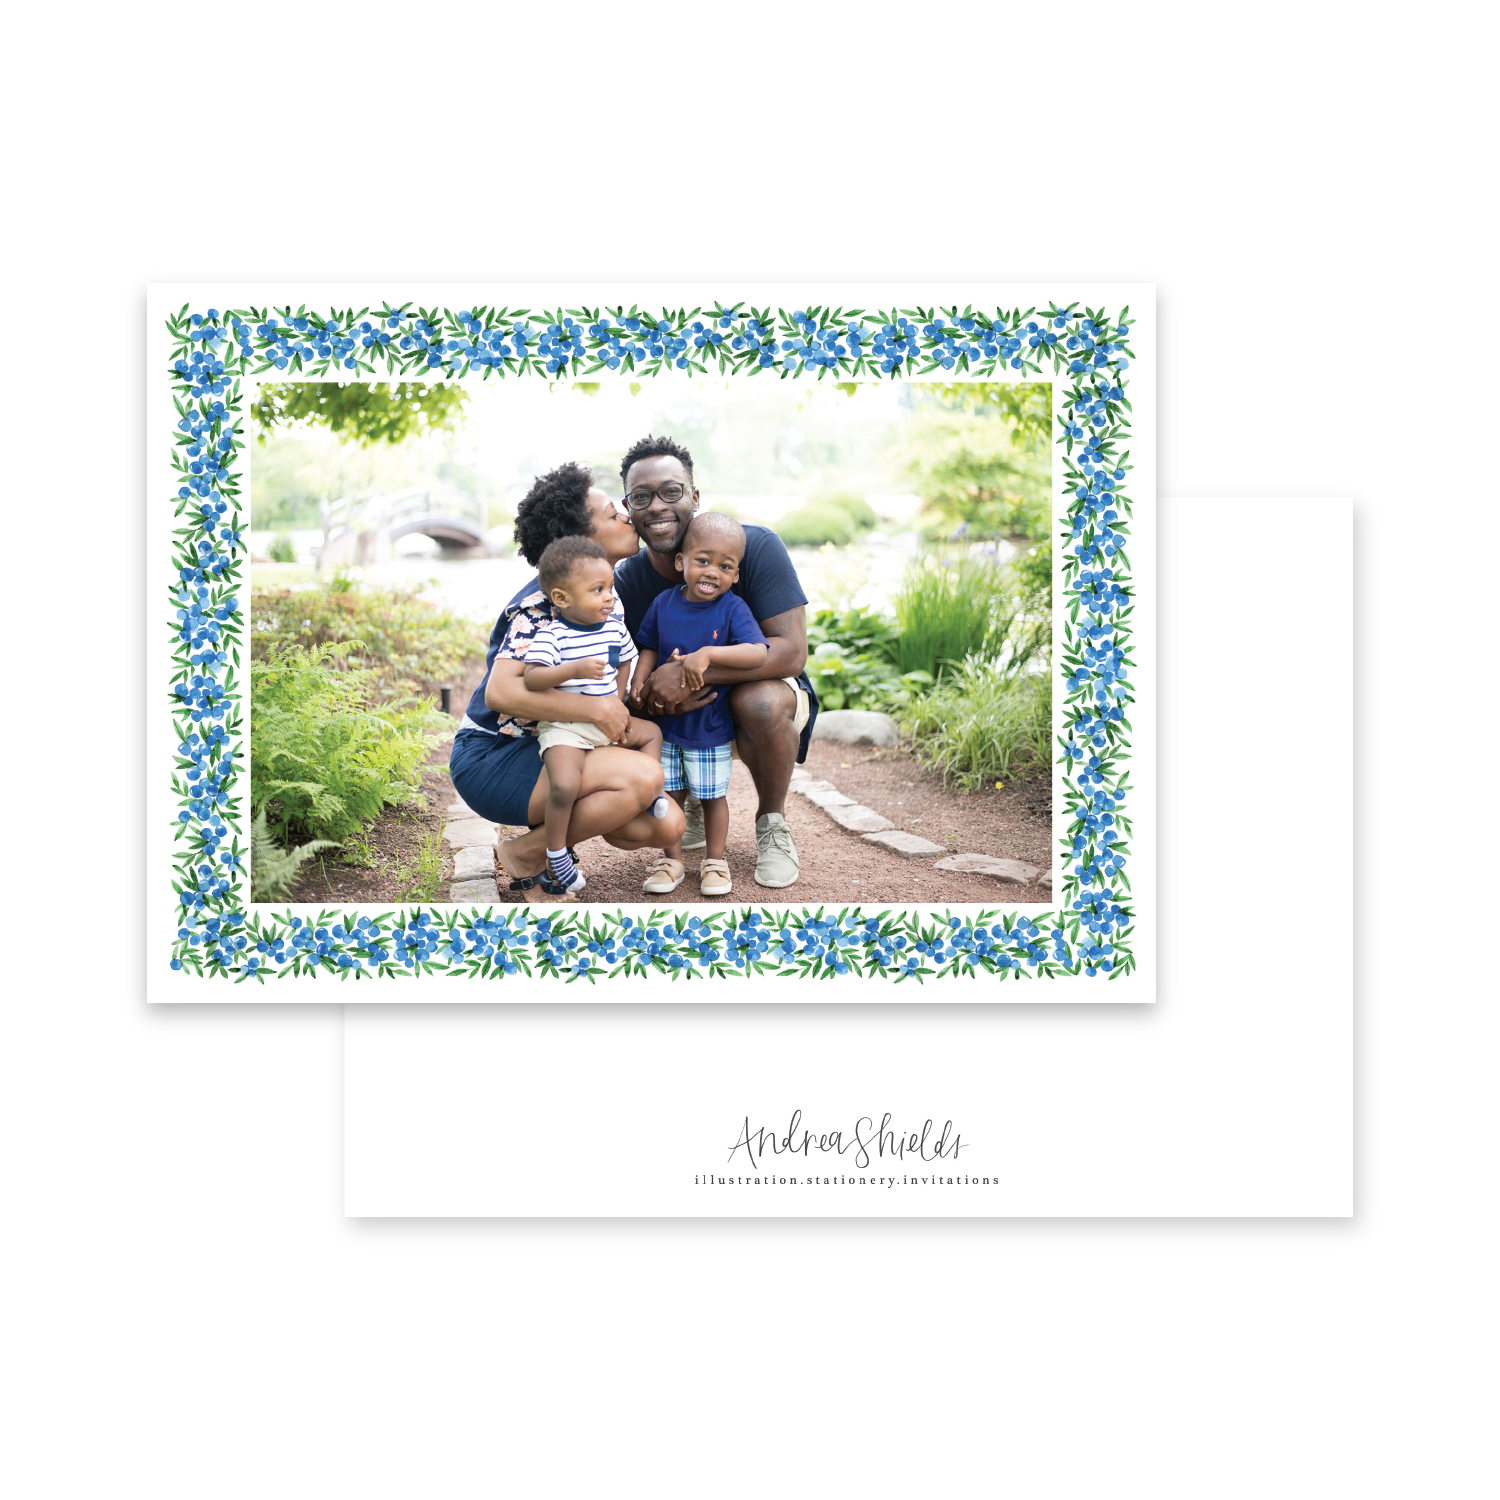 Blue Berries Border Landscape | Holiday Photo Card